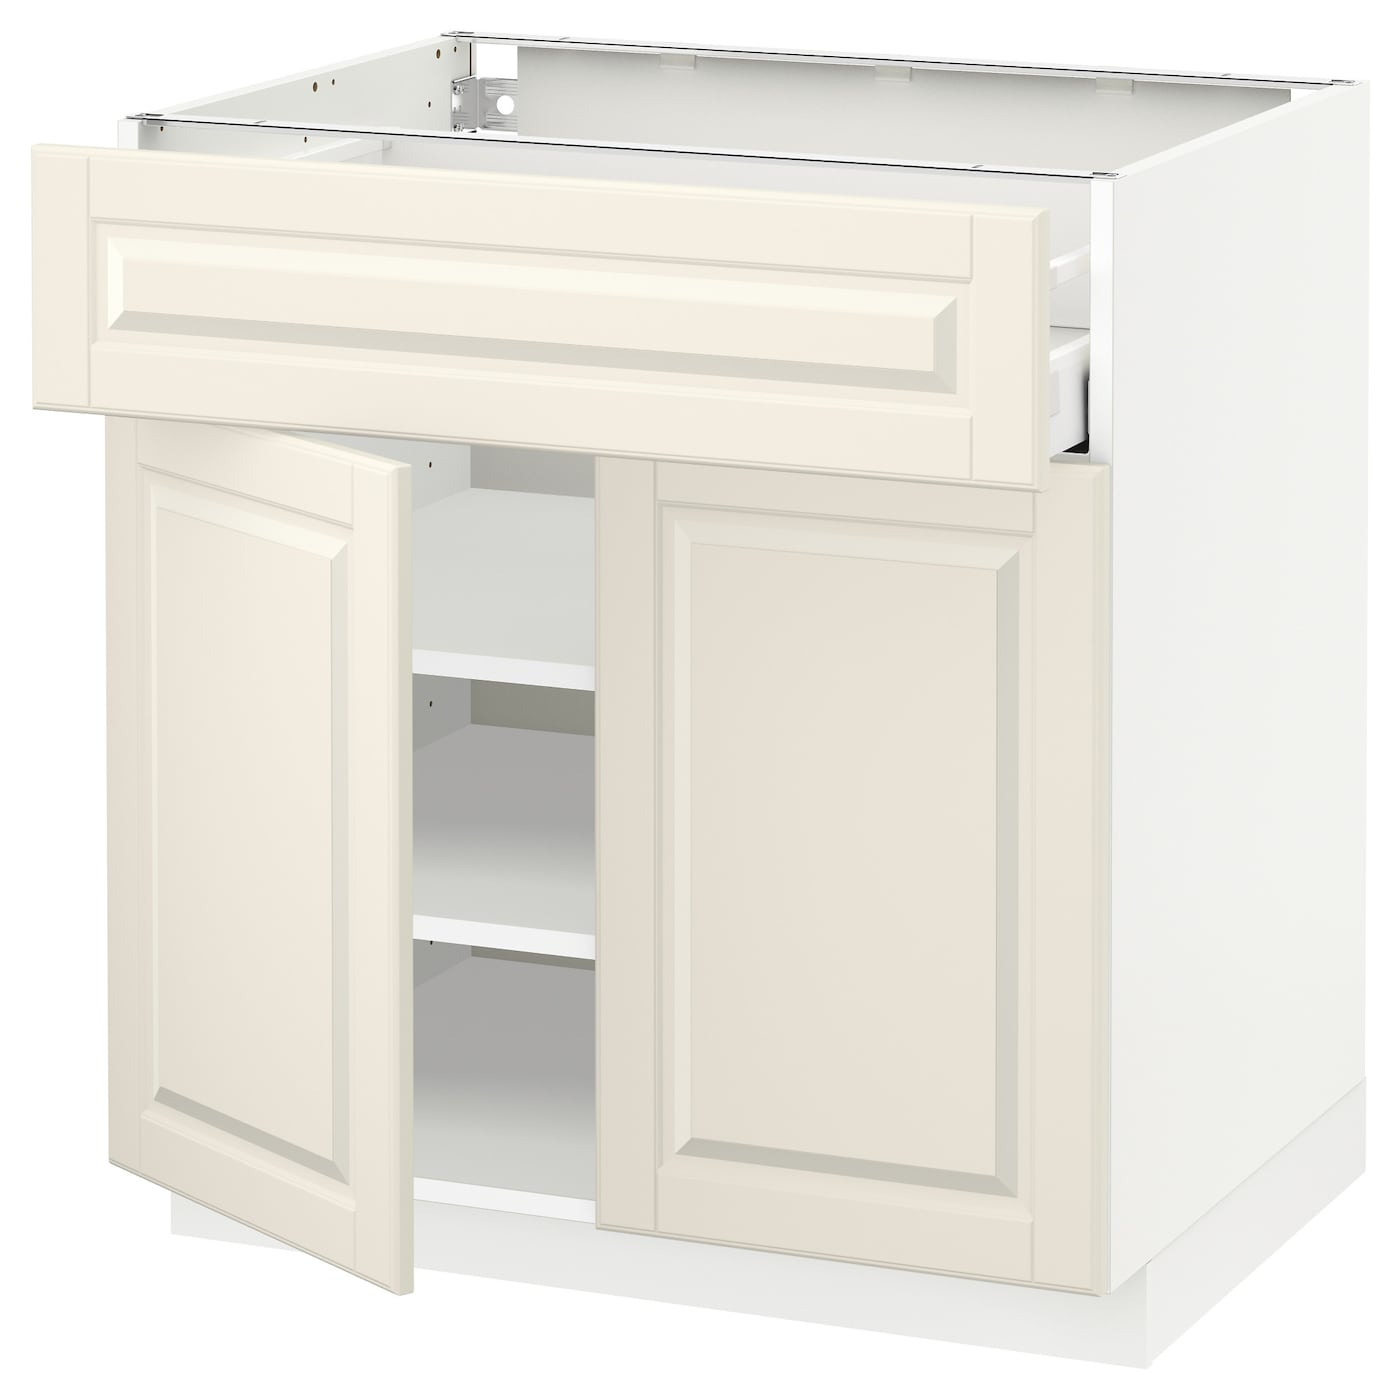 metod maximera base cabinet with drawer 2 doors white bodbyn off white 80 x 60 cm ikea. Black Bedroom Furniture Sets. Home Design Ideas